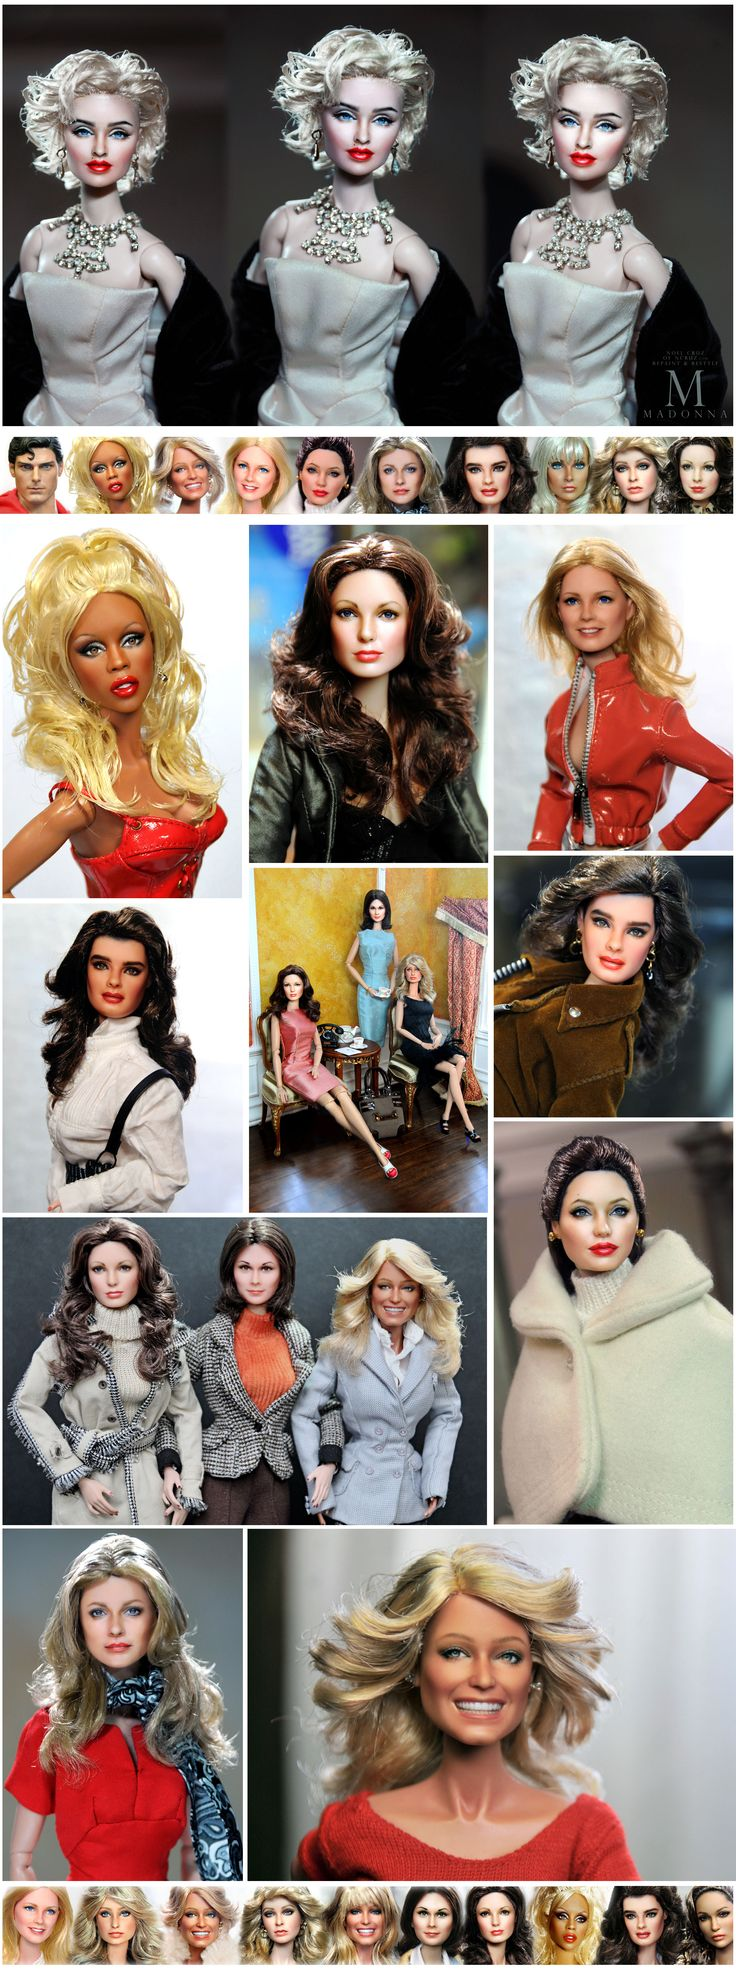 Madonna, Farrah Fawcett, Cheryl Ladd, Jaclyn Smith, Kate Jackson, Lindsay Wagner, RuPaul, Chris Reeves, Angelina Jolie, Brooke Shields and more... as repainted and restyled by Noel Cruz of ncruz.com for myfarrah.com.